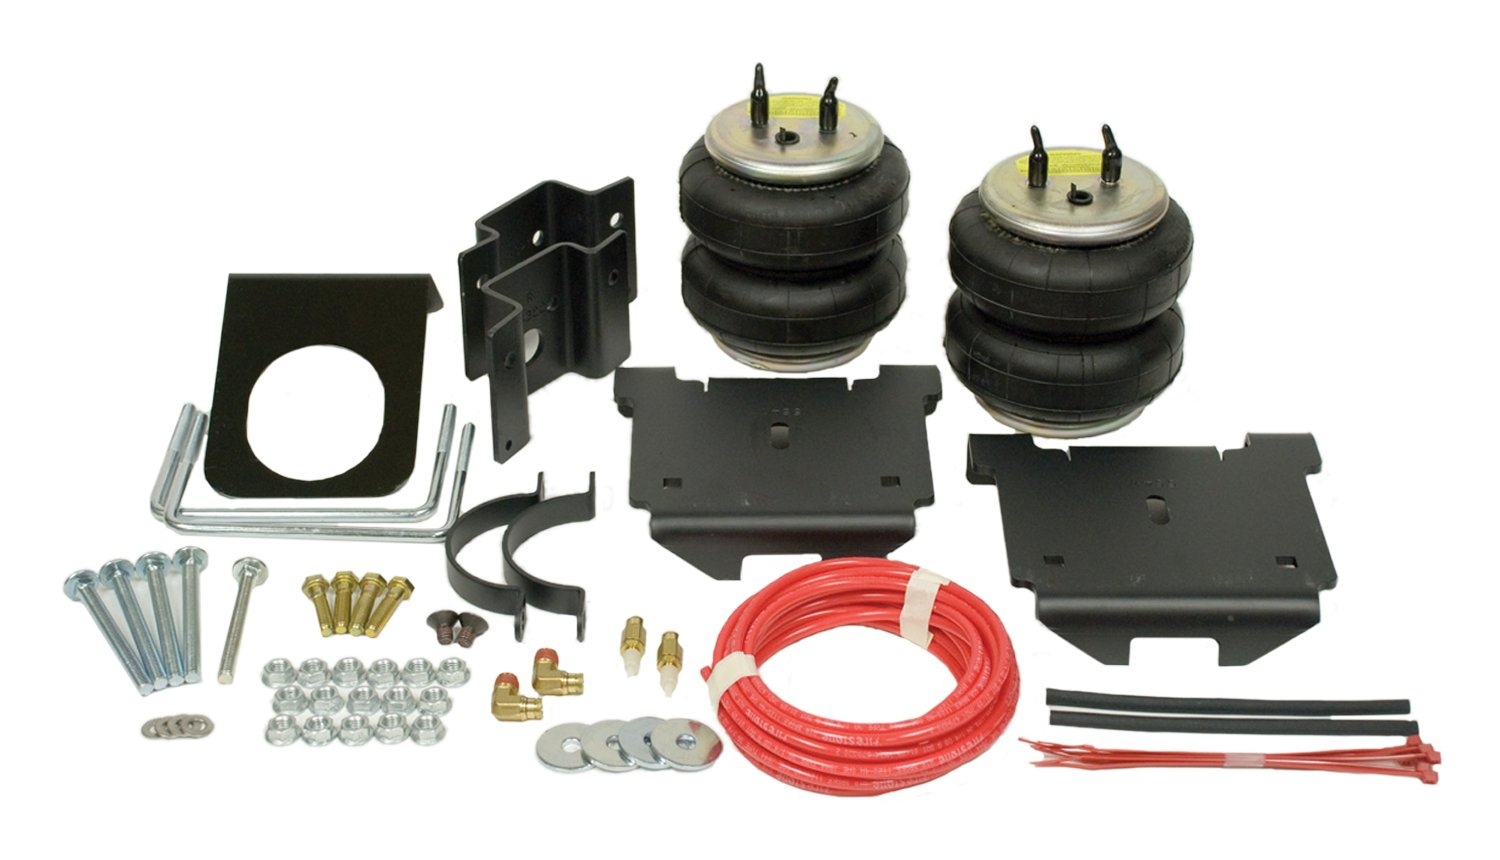 Best Rated In Automotive Performance Air Suspension Kits Helpful Trailer Light Wiring Harness 4 Flat 35ft To Redo Lights Firestone W217602250 Ride Rite Kit For Gm C2500hd C3500 Product Image